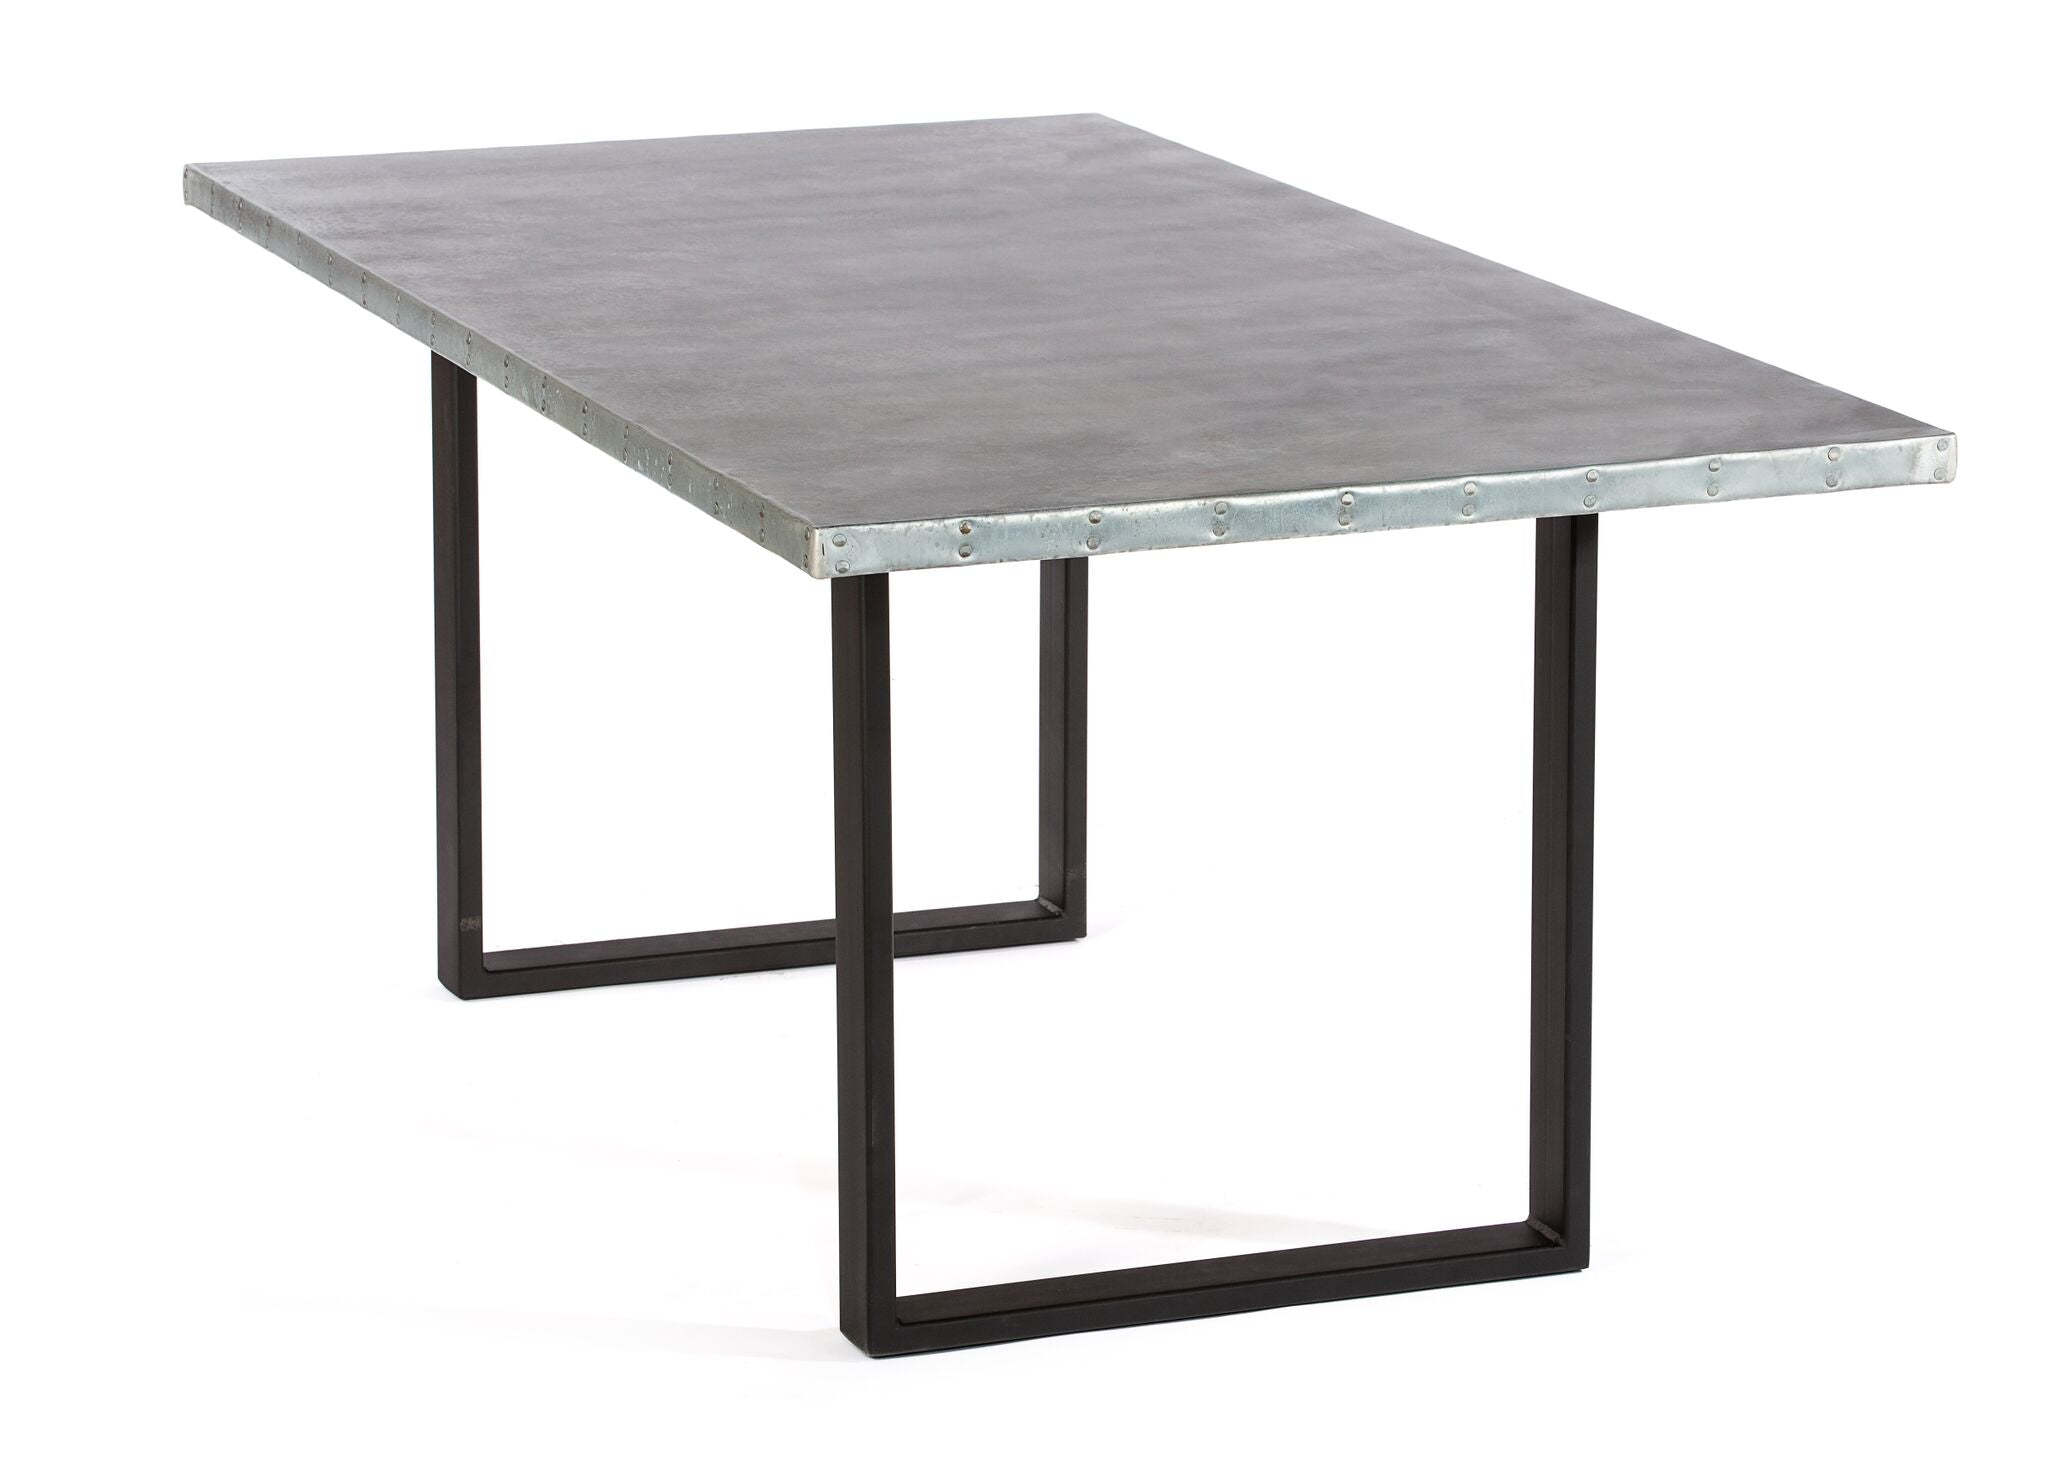 Maddox Table kingston-krafts-zinc-tables.